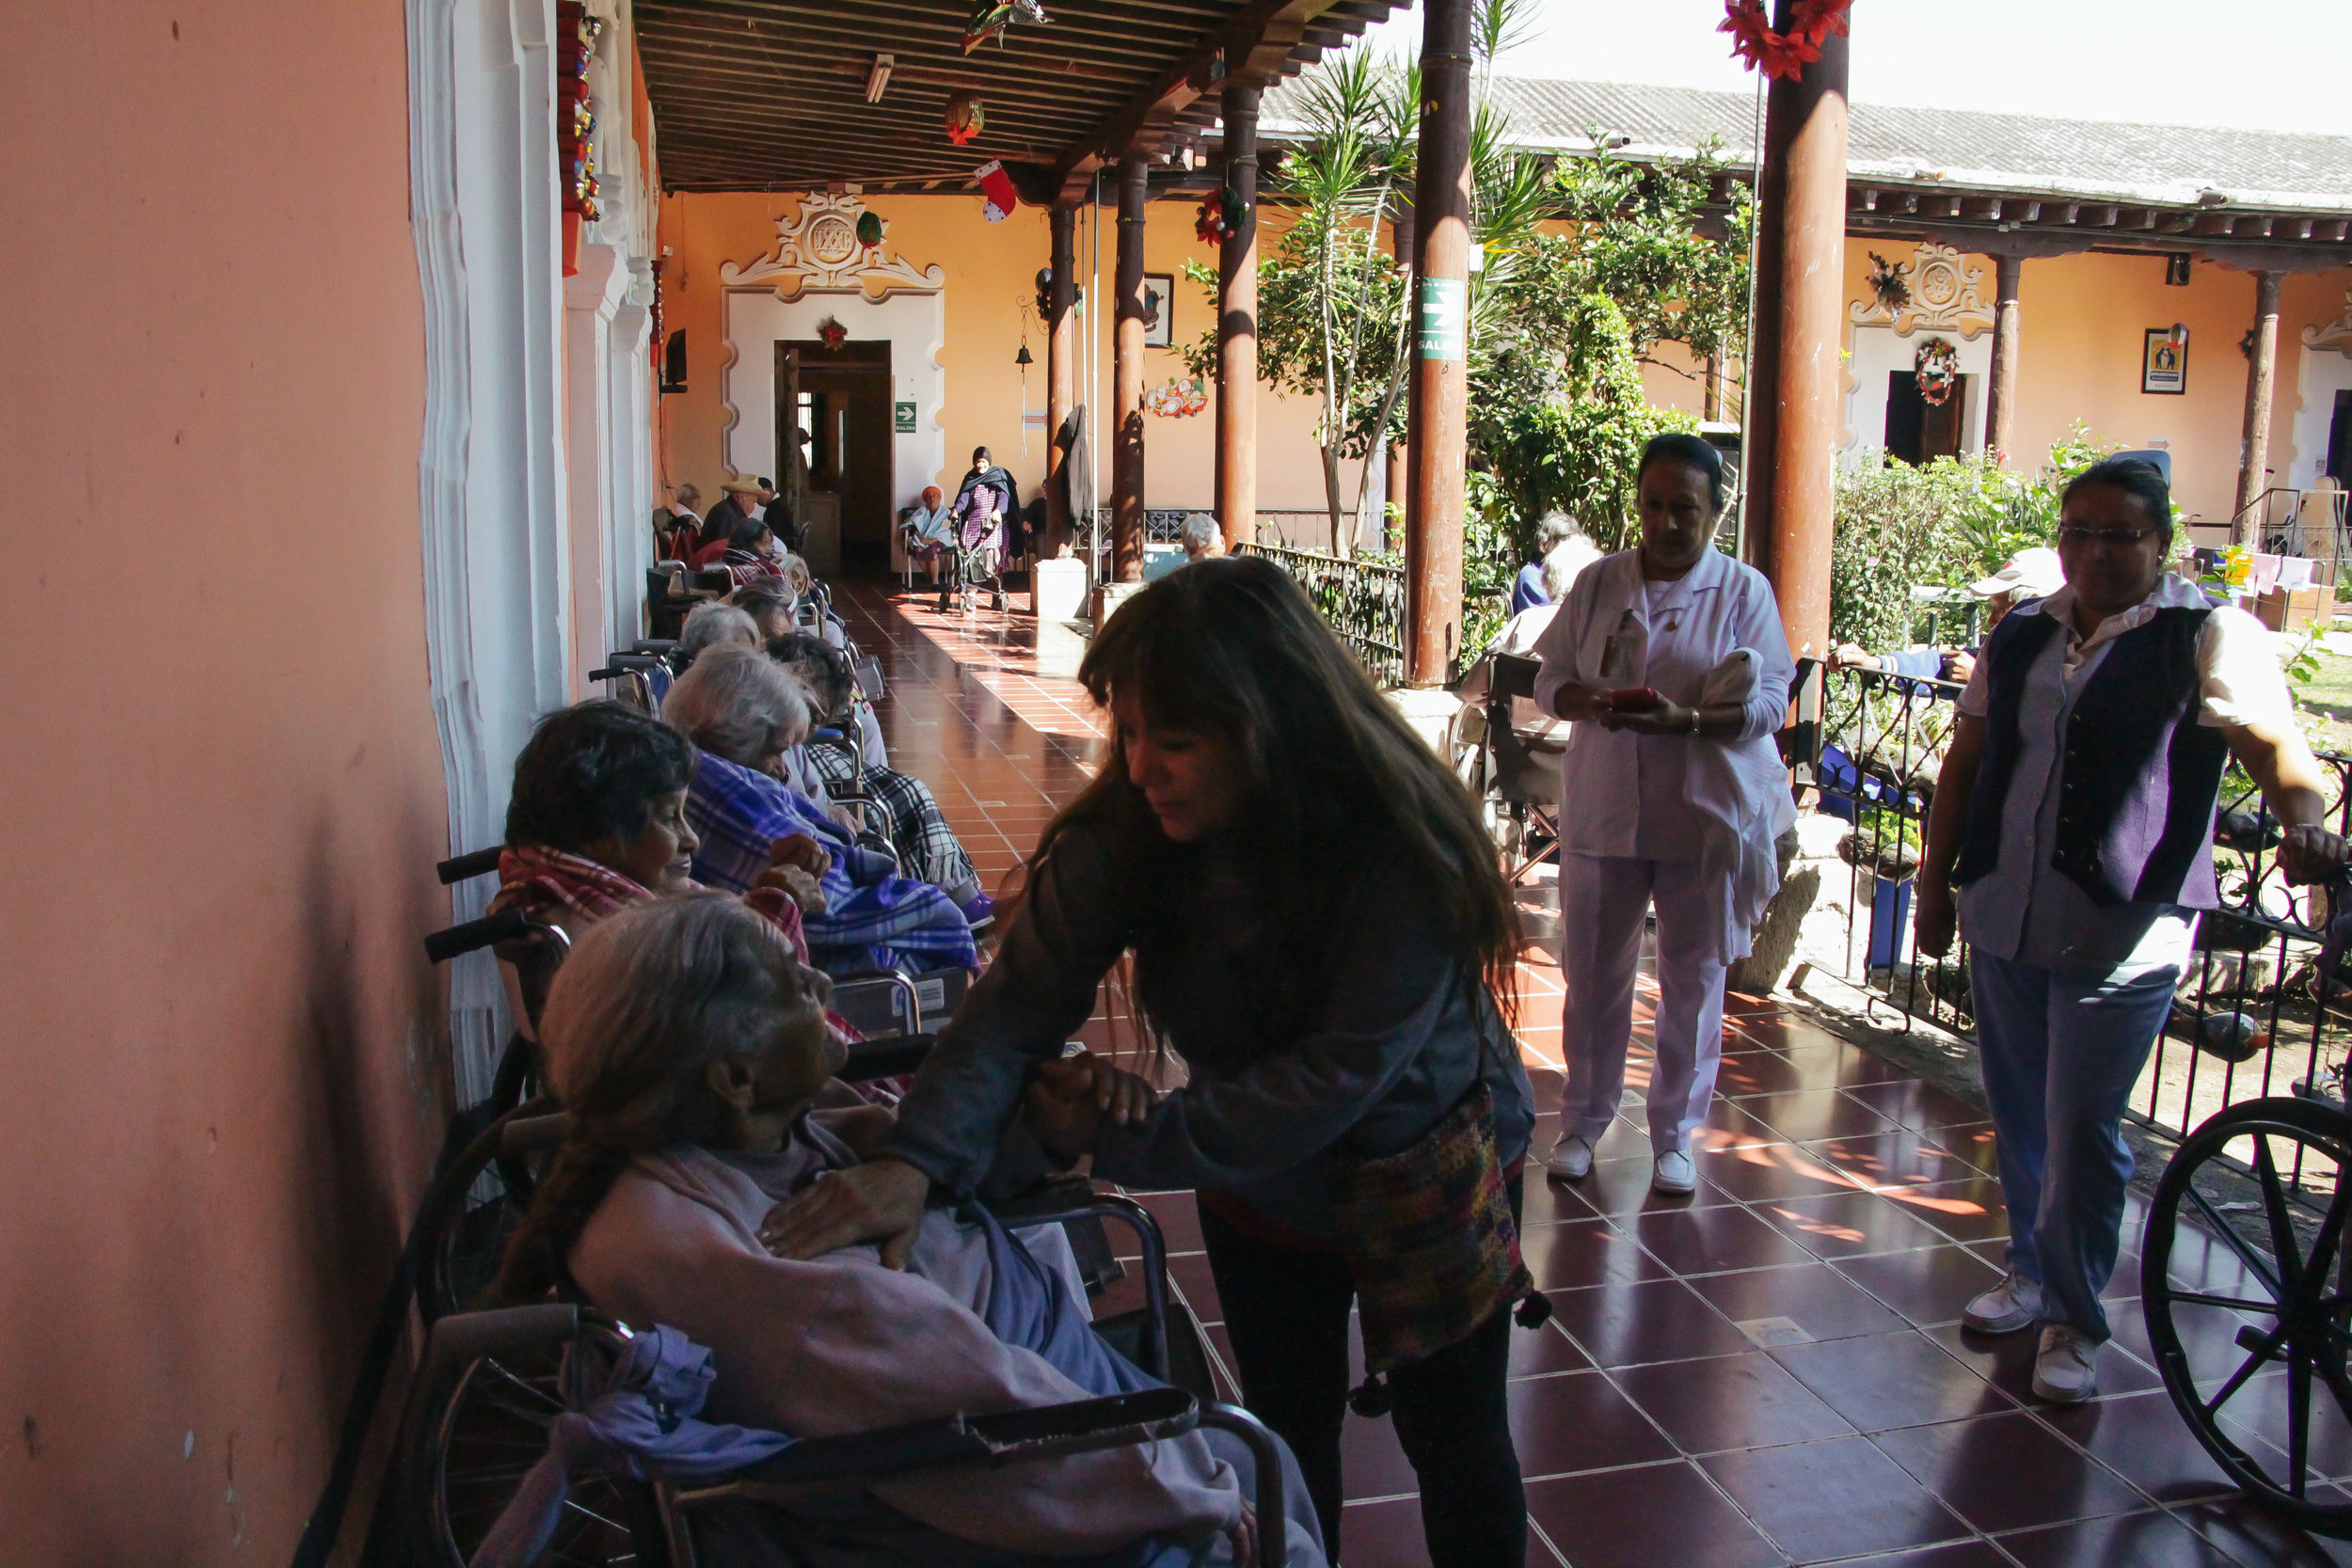 ESCOBEDO CHECKS IN ON HER PATIENT SATURNINA ARRIAGA AT HOGAR DE ANCIANOS ON JAN. 17. ARRIAGA GUESSED SHE WAS 60 YEARS OLD, BUT AFTER CHECKING WITH THE STAFF ESCOBEDO FOUND ARRIAGA TO BE 90 YEARS OLD.